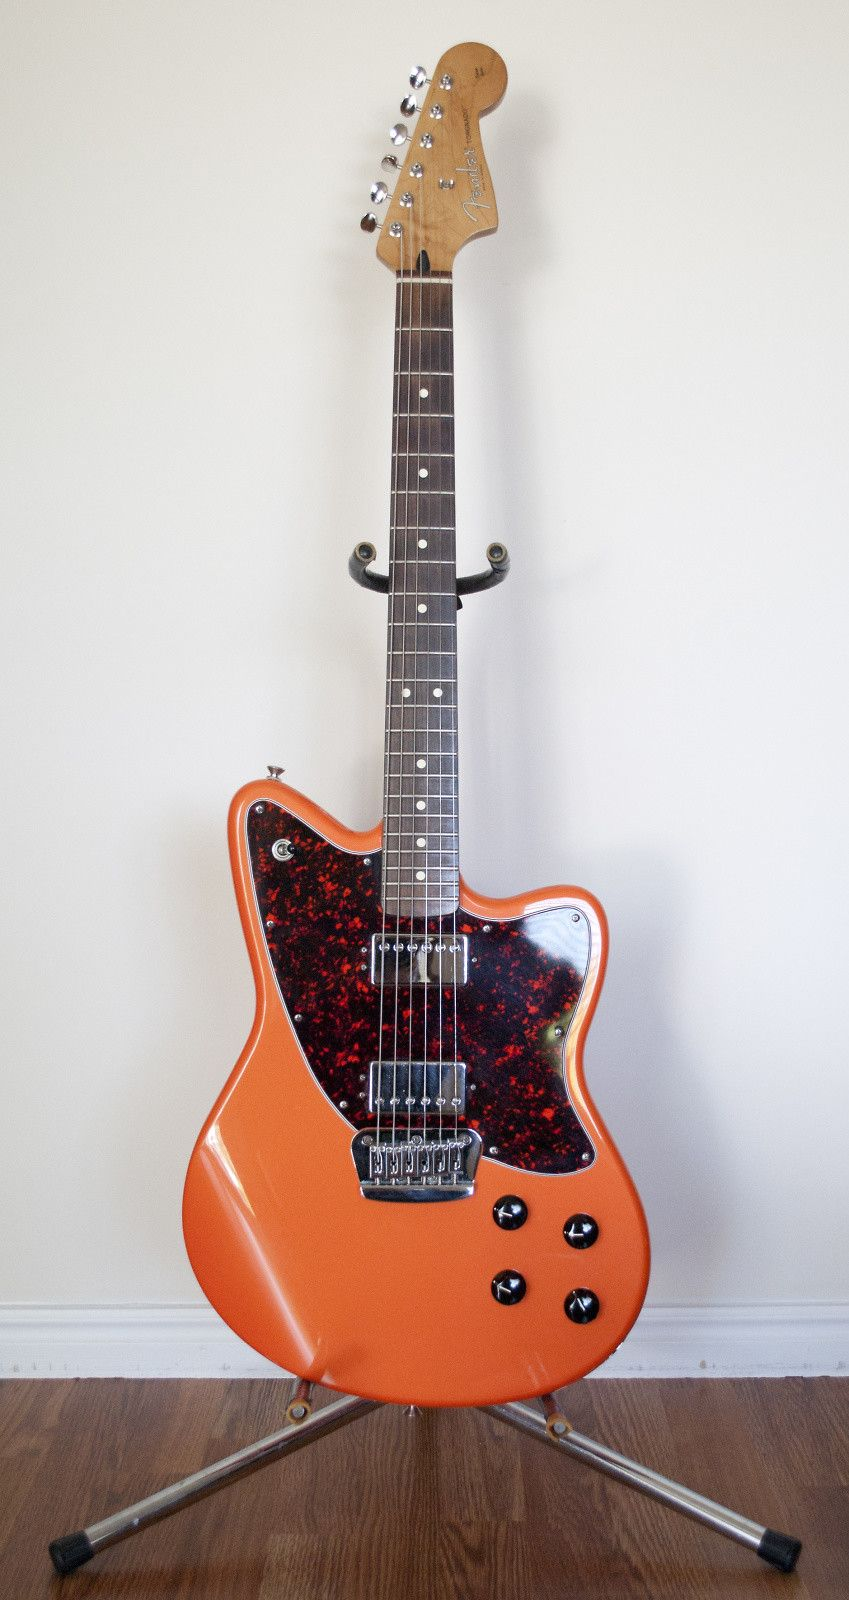 Fender Toronado Wiring Diagram Just Another Blog For Two Humbuckers Tele Harmony Bobkat Library Rh 53 Evitta De Seymour Duncan Diagrams Guitar